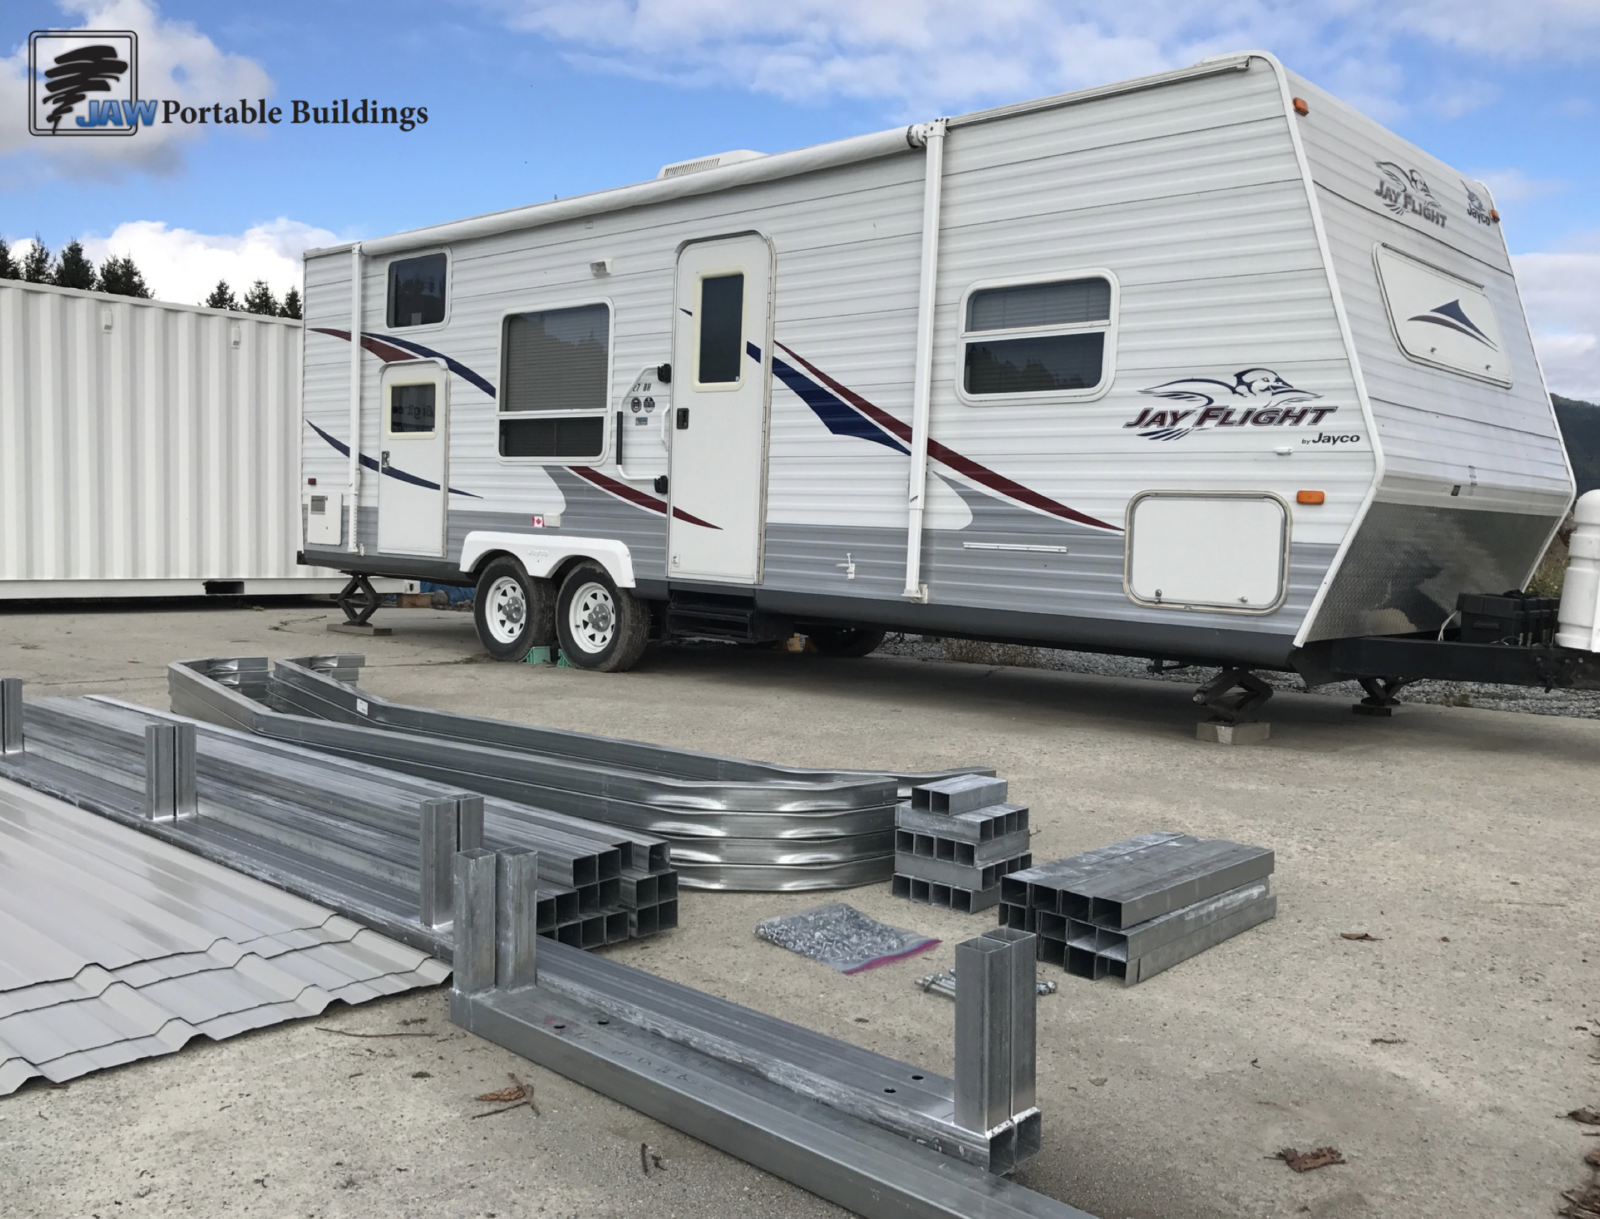 Portable Metal Travel Trailers - JAW Portable Buildings